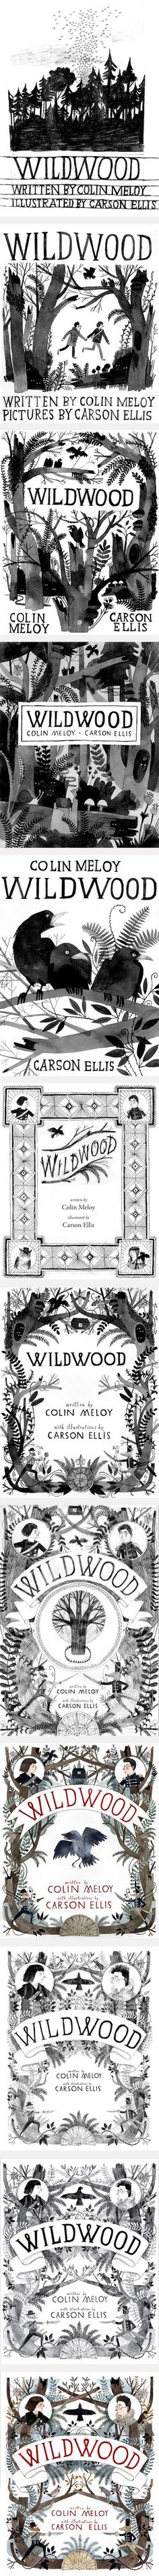 The agony and the ecstasy - the story about the cover design of Wildwood by Colin Meloy and Carson Ellis